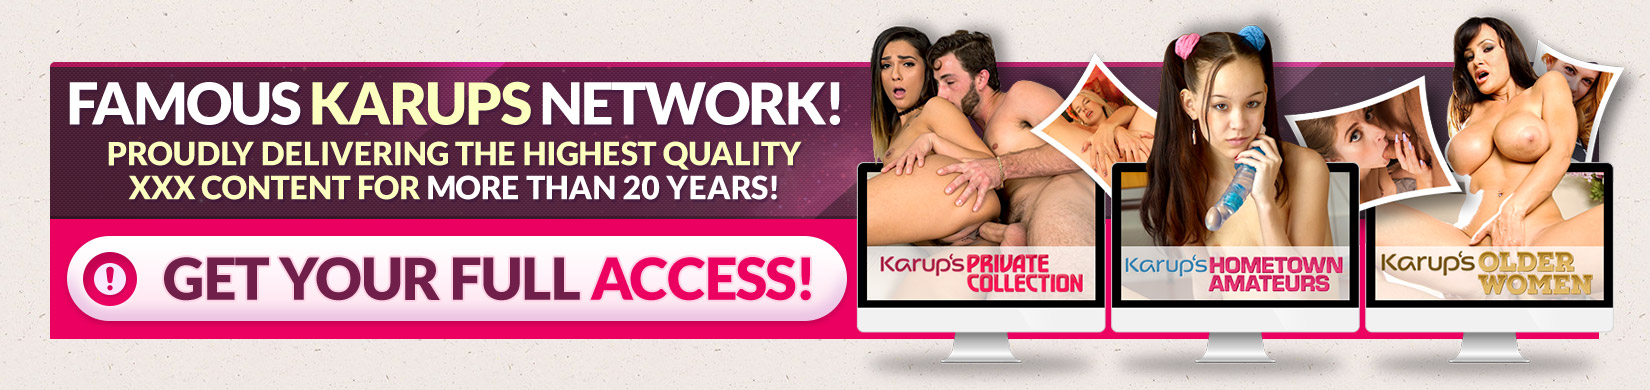 Get your full membership to the famous Karups network!